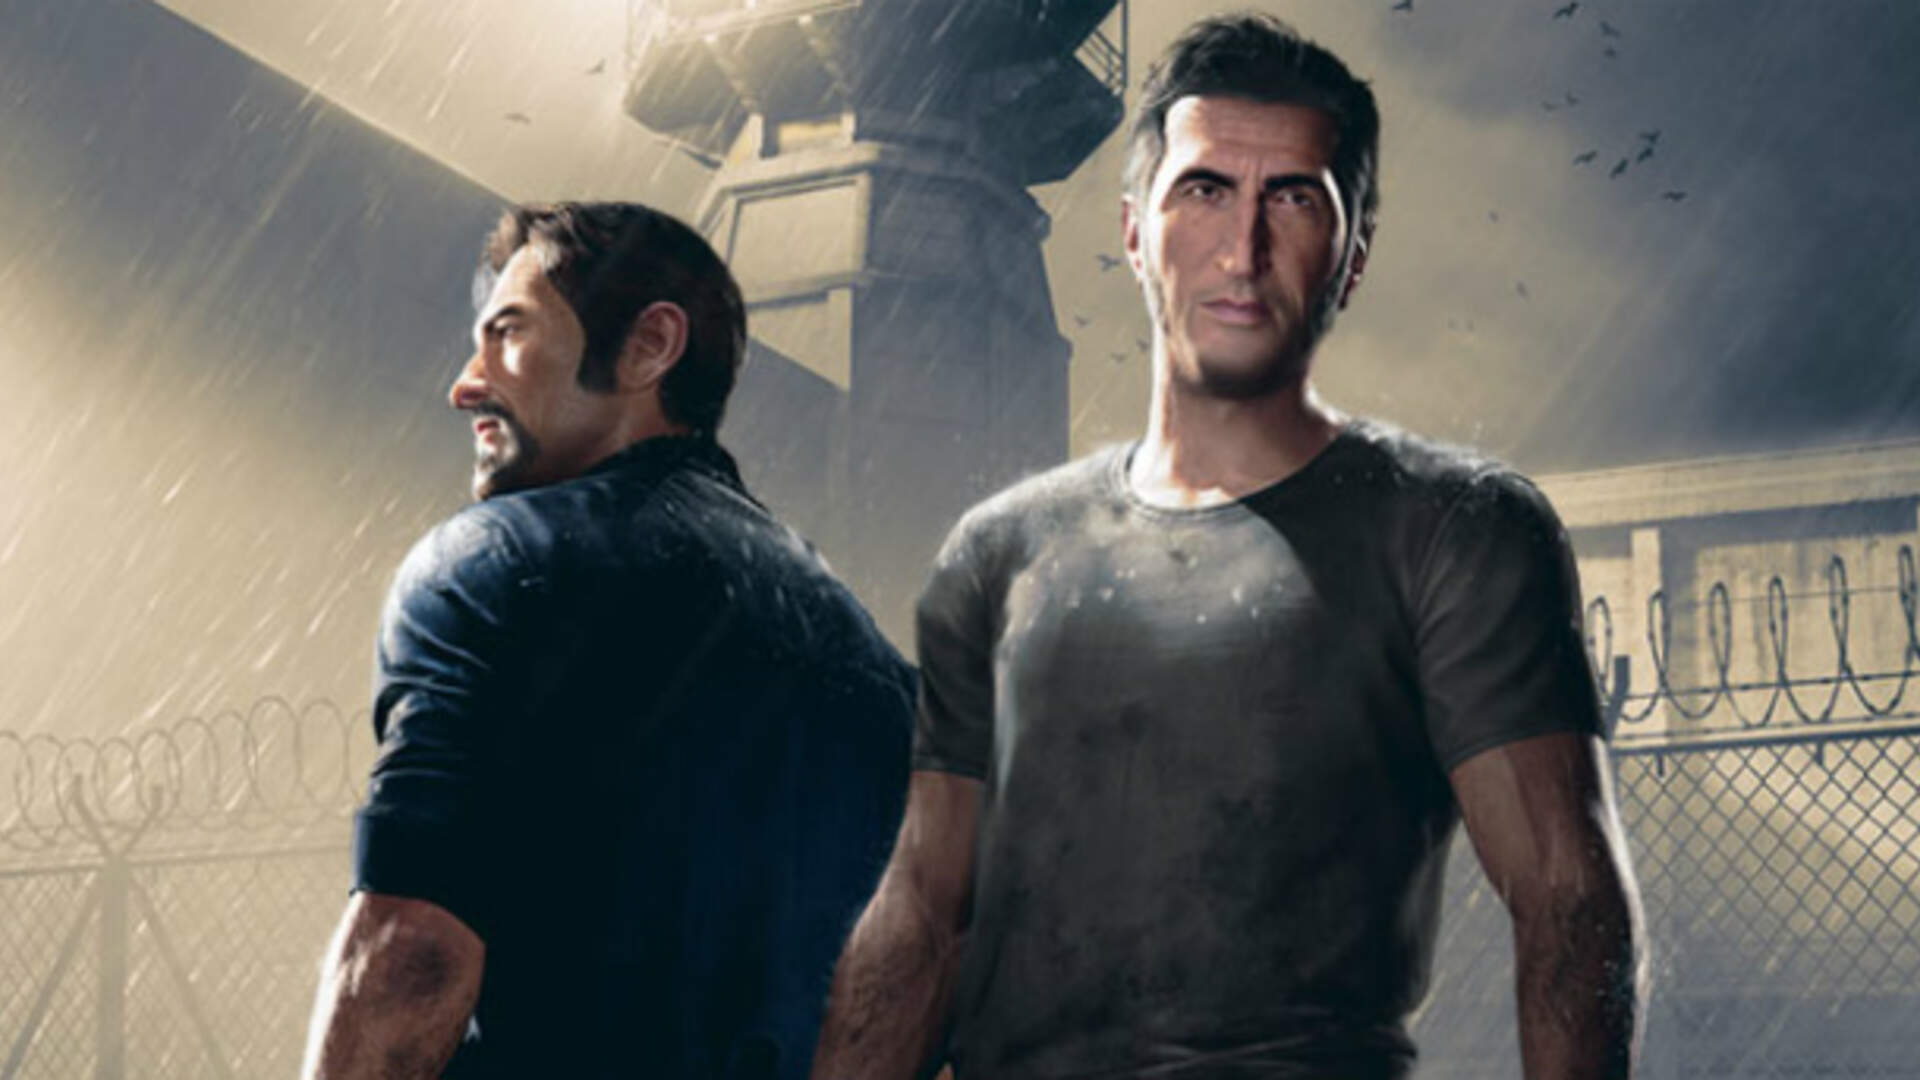 A Way Out - Release Date, Trailers, Gameplay, Co-Op, Characters, Our Impressions - Everything We Know